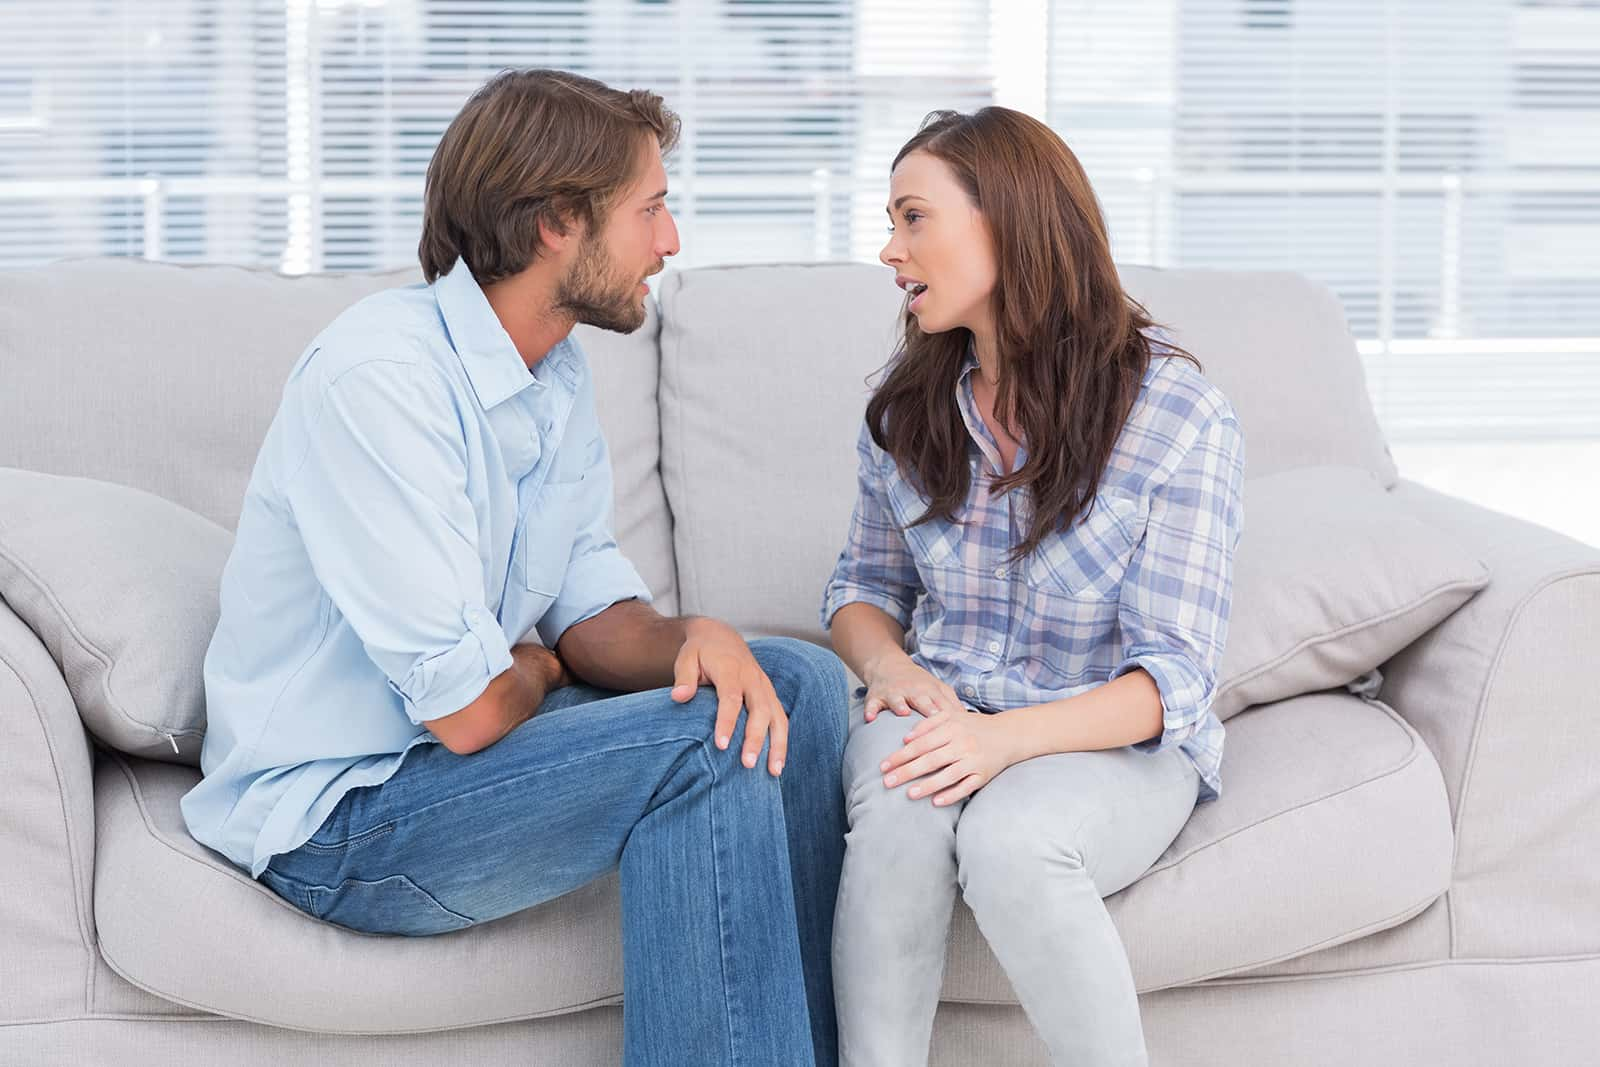 kind woman talking with a man while sitting close to each other on the couch